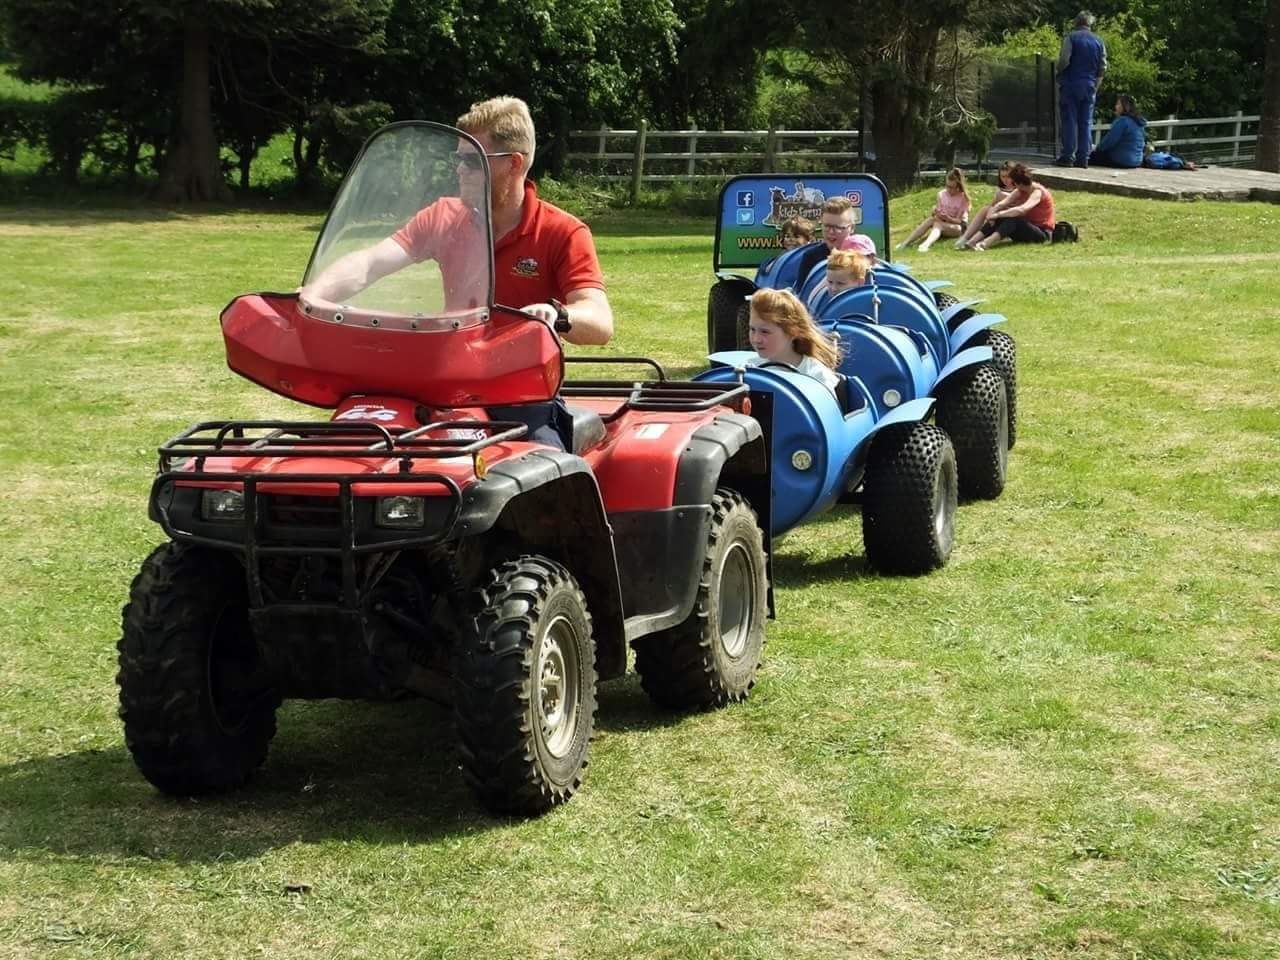 Check out our Quad Train!